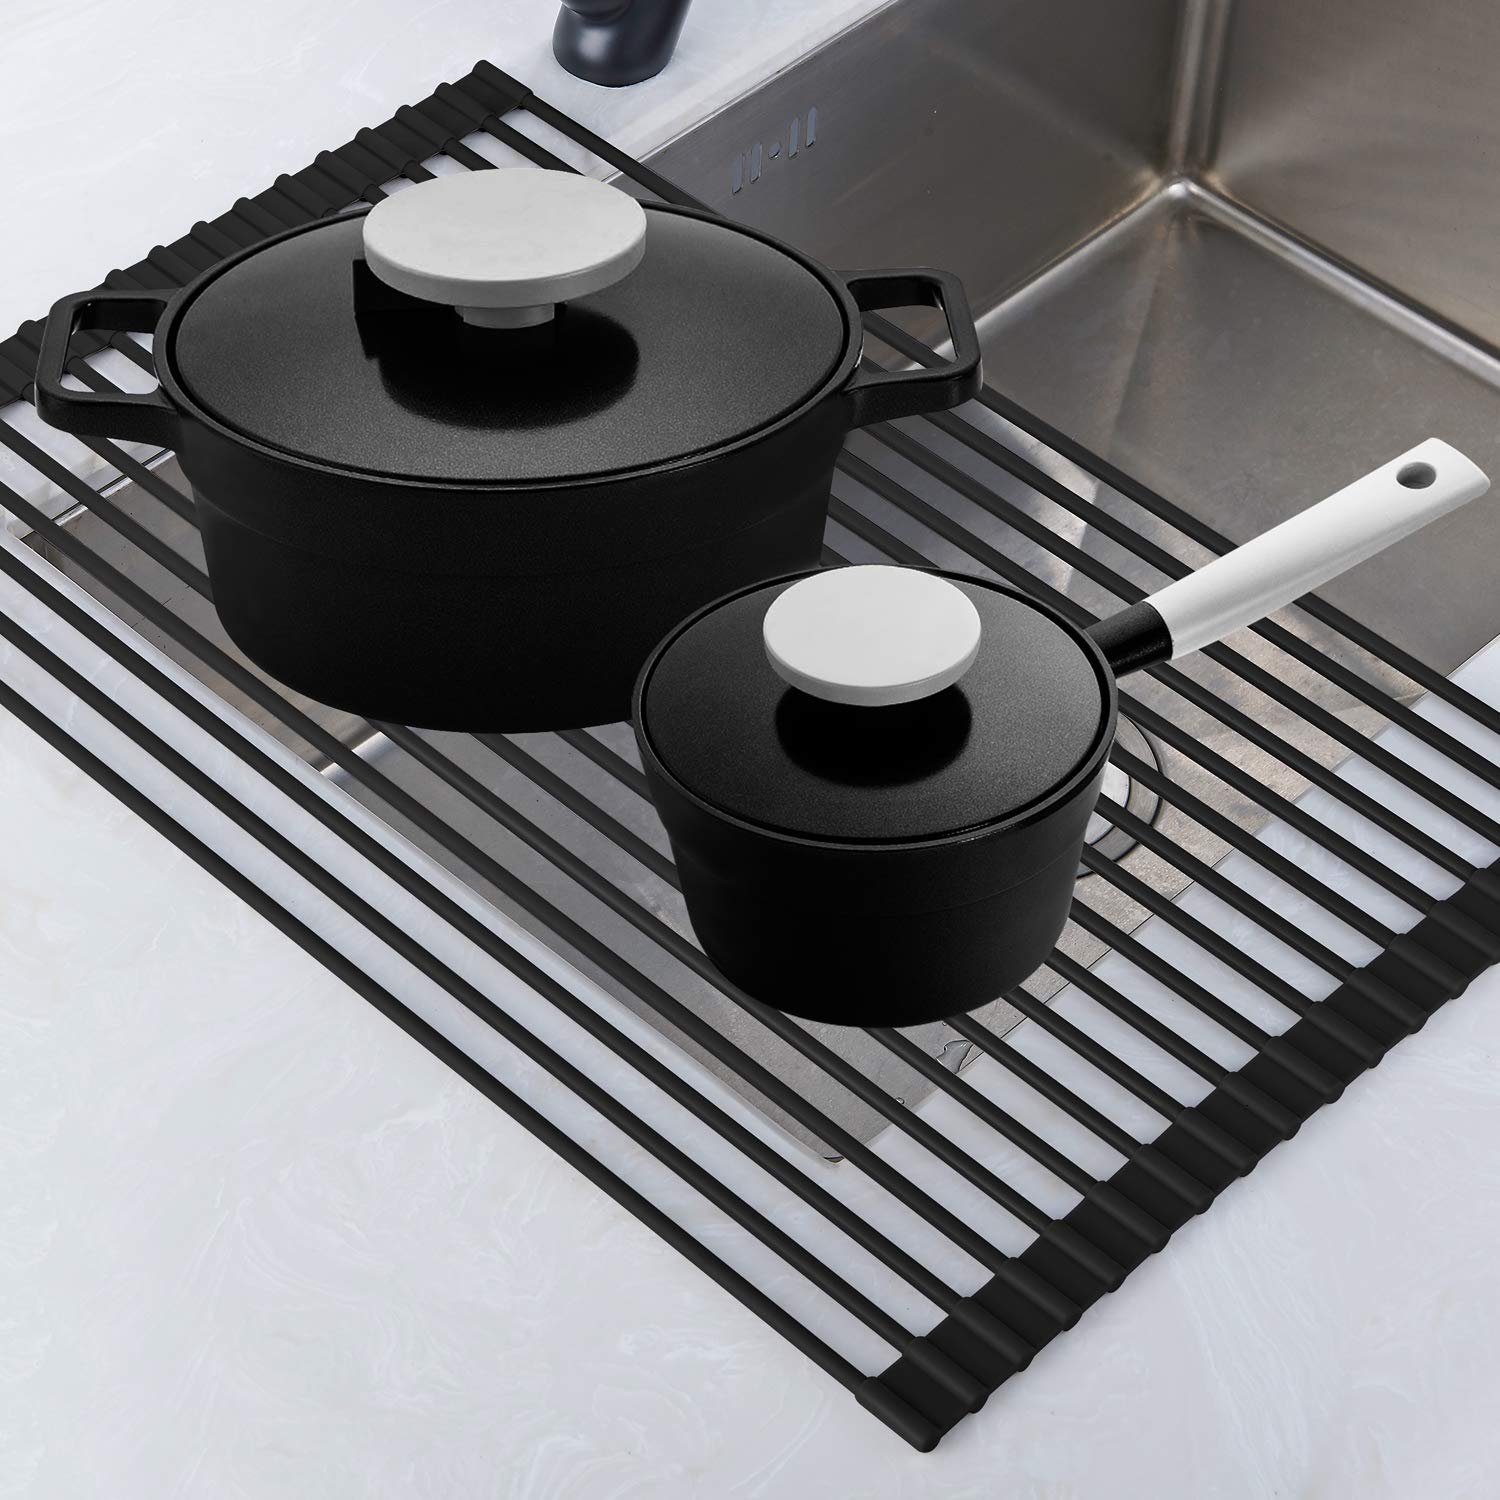 Collapsible Dish Drying Rack-In The Sink Drying Mat-Multipurpose Dish Drainer-Rv Dish Drying Rack-Fruits and Vegetable Rinser-Durable Silicone Covered Stainless Steel Gray Roll Up Rack TECI TCF001G